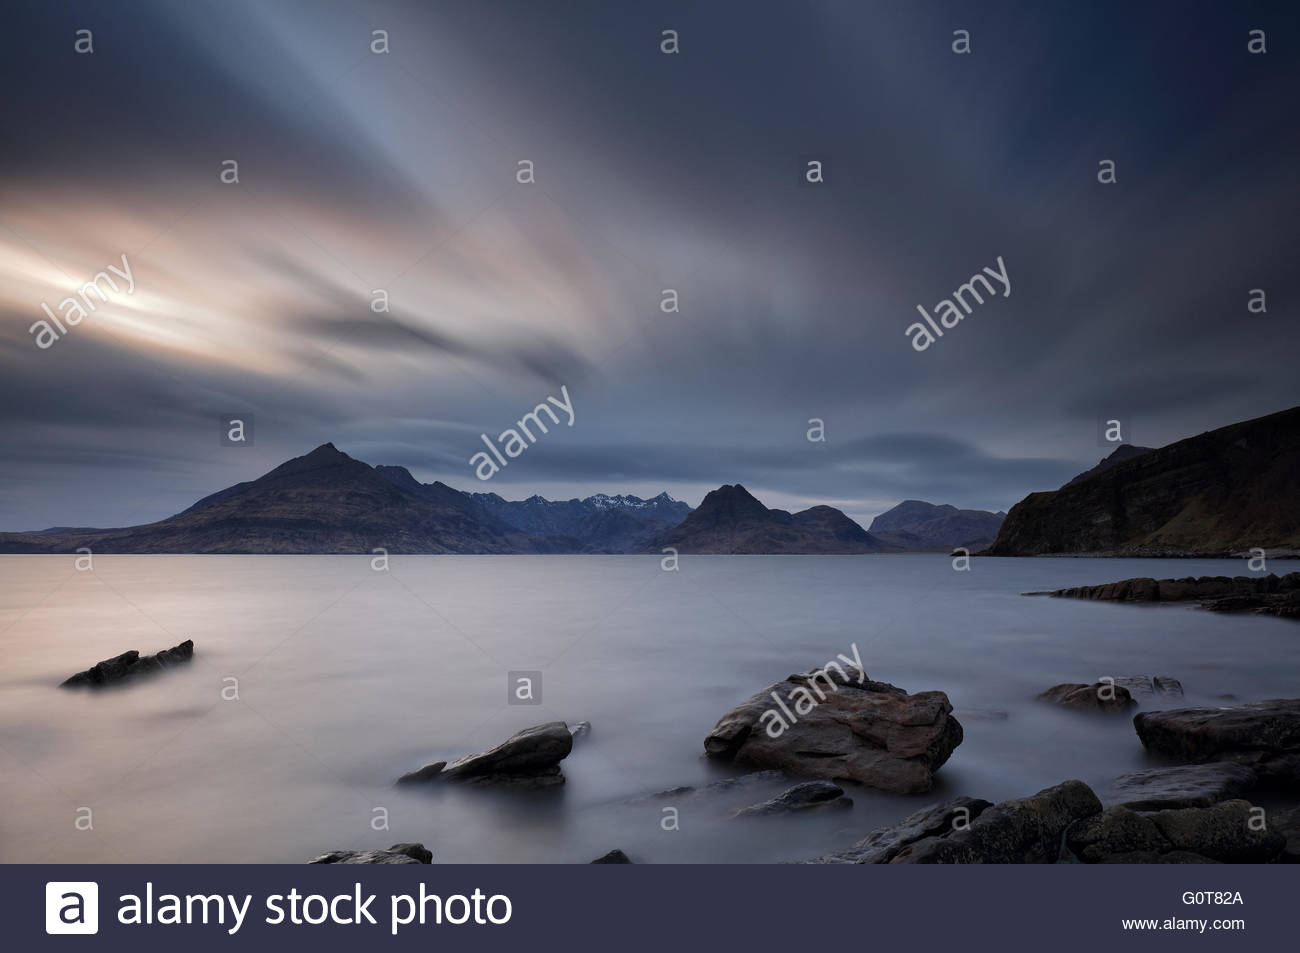 A long exposure of the rocky shore at Elgol on the Isle of Skye, with the snow-capped Cuillin mountains in the distance. - Stock Image